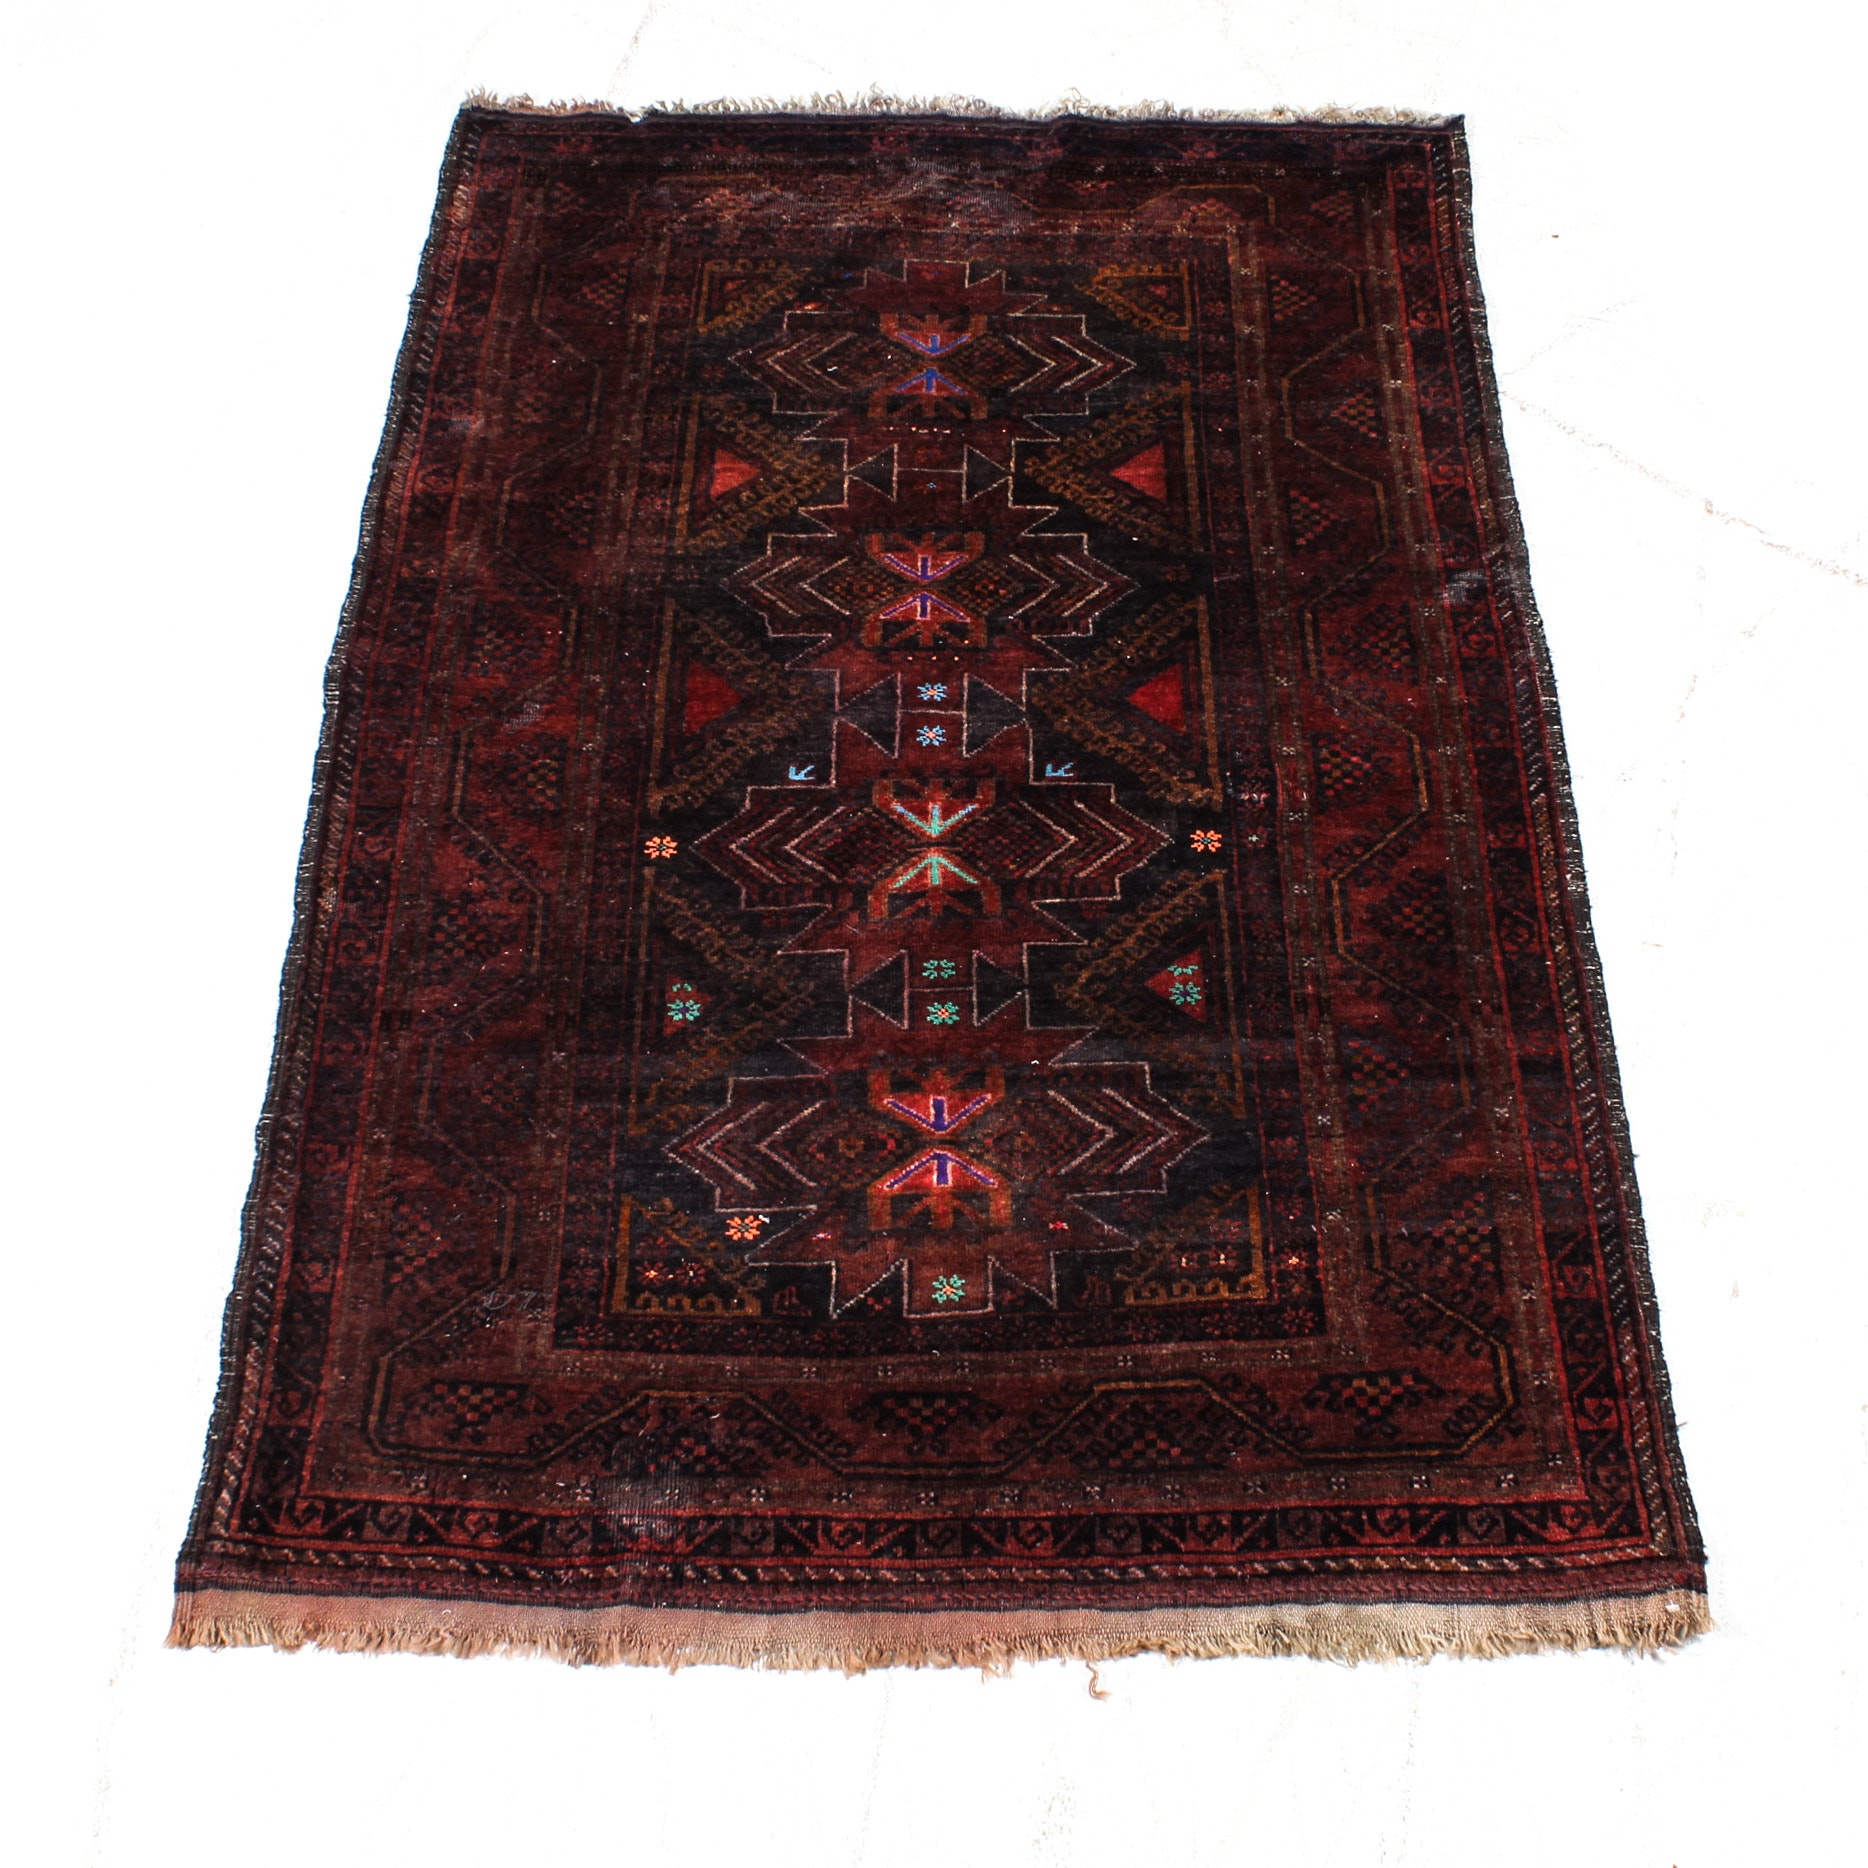 Hand-Knotted Persian Balouch Rug, circa 1900